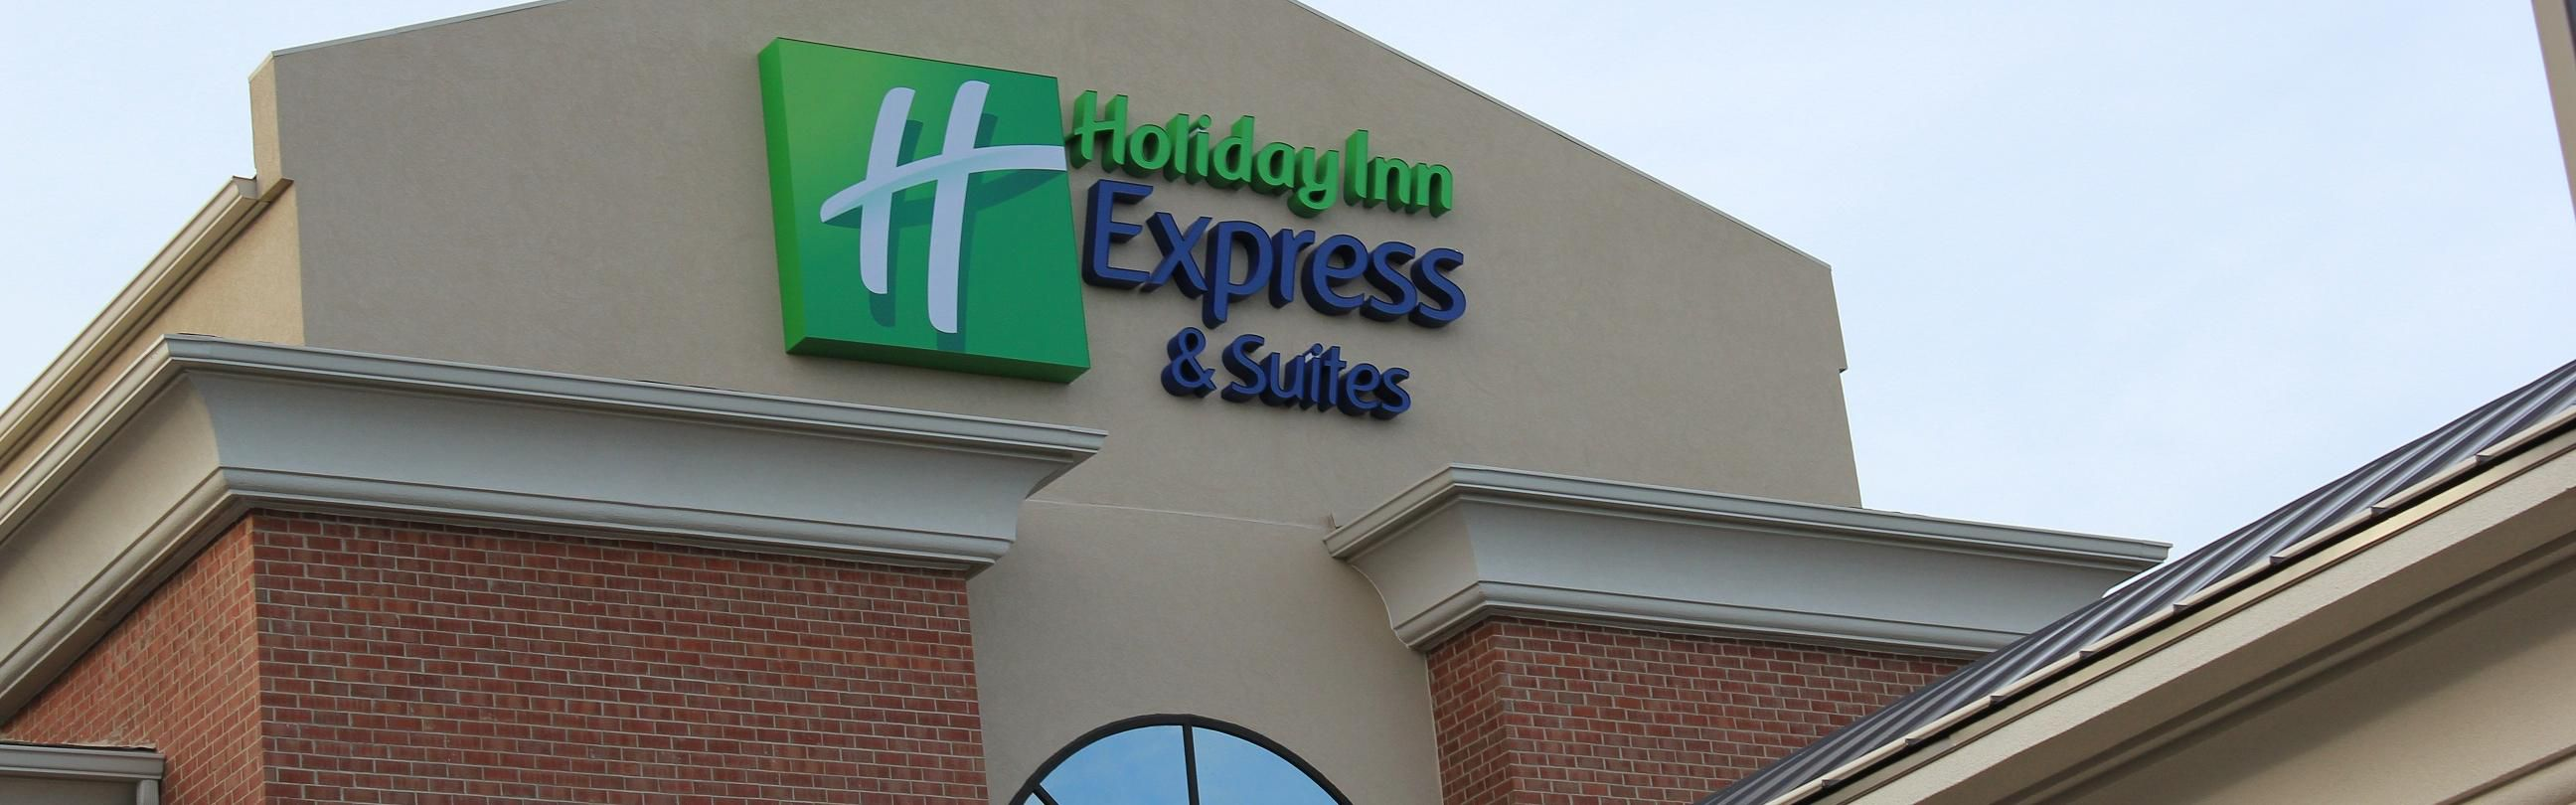 Holiday Inn Express & Suites Niles image 0